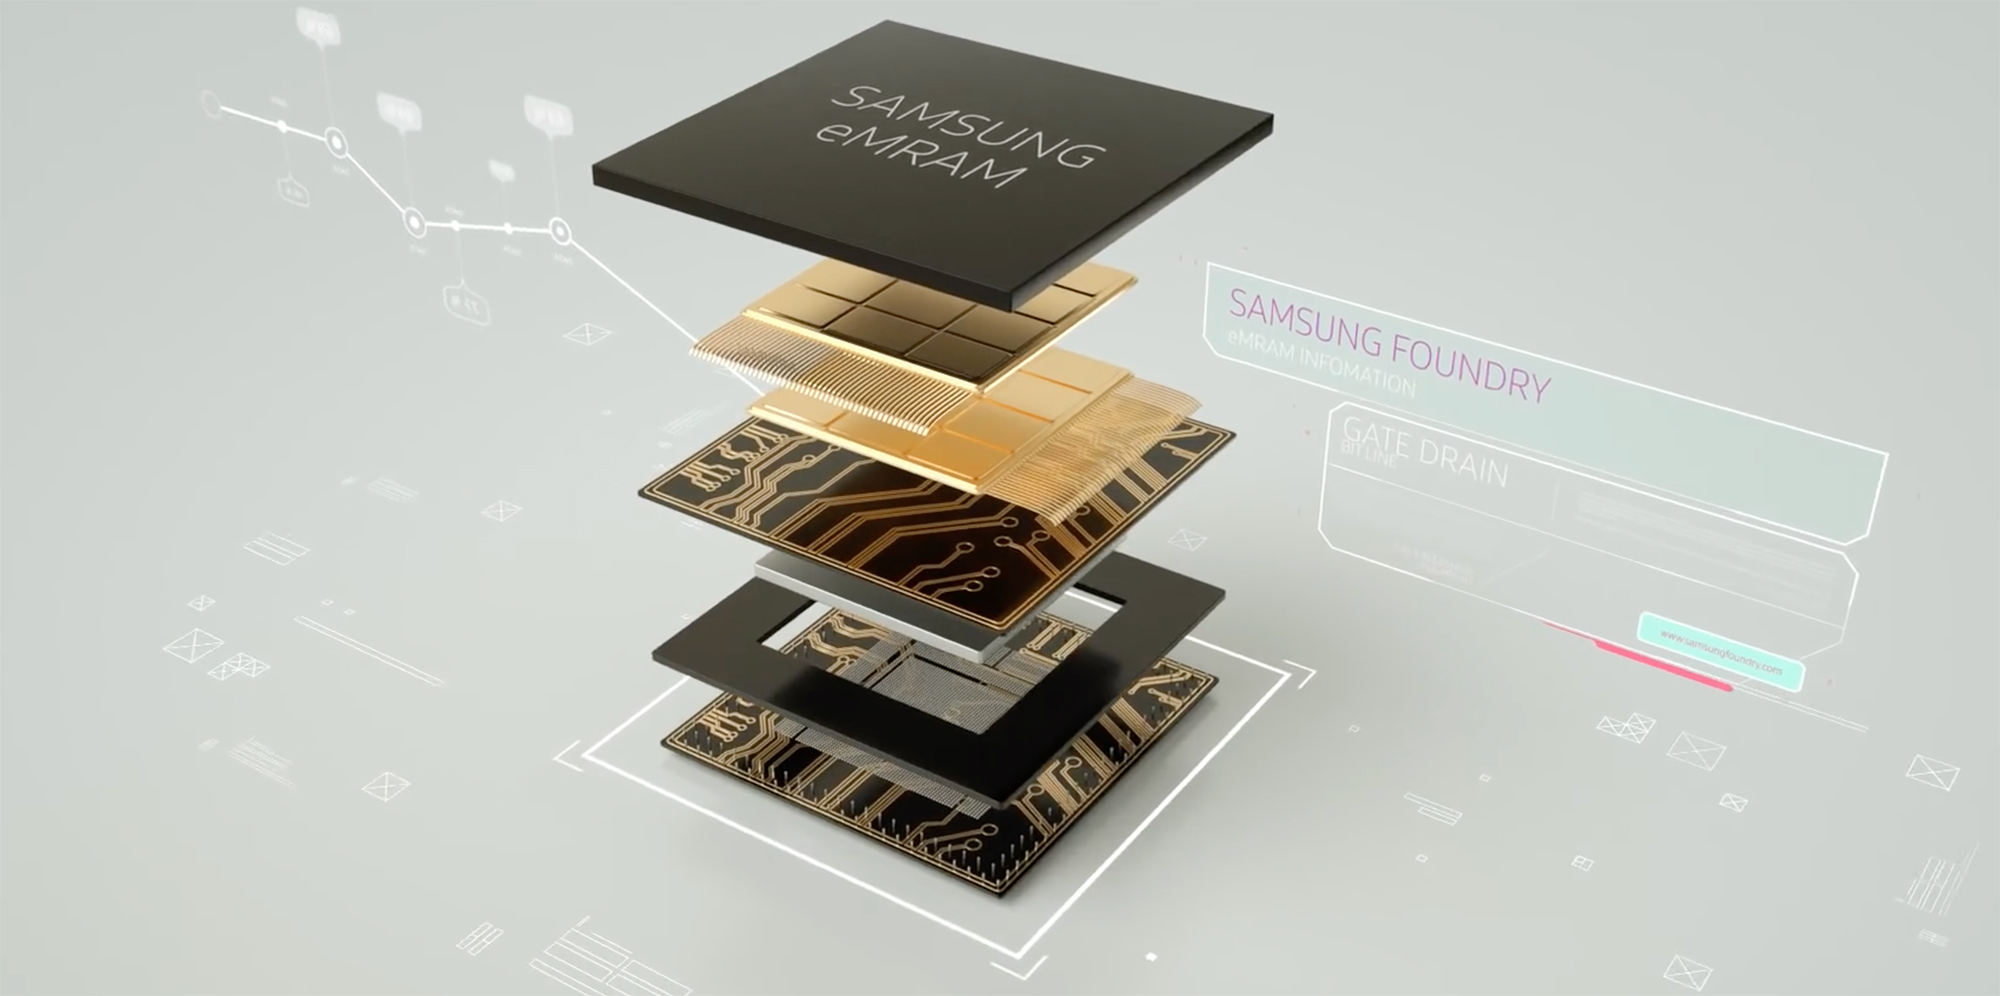 Samsung Ships First Commercial Embedded MRAM (eMRAM) Product